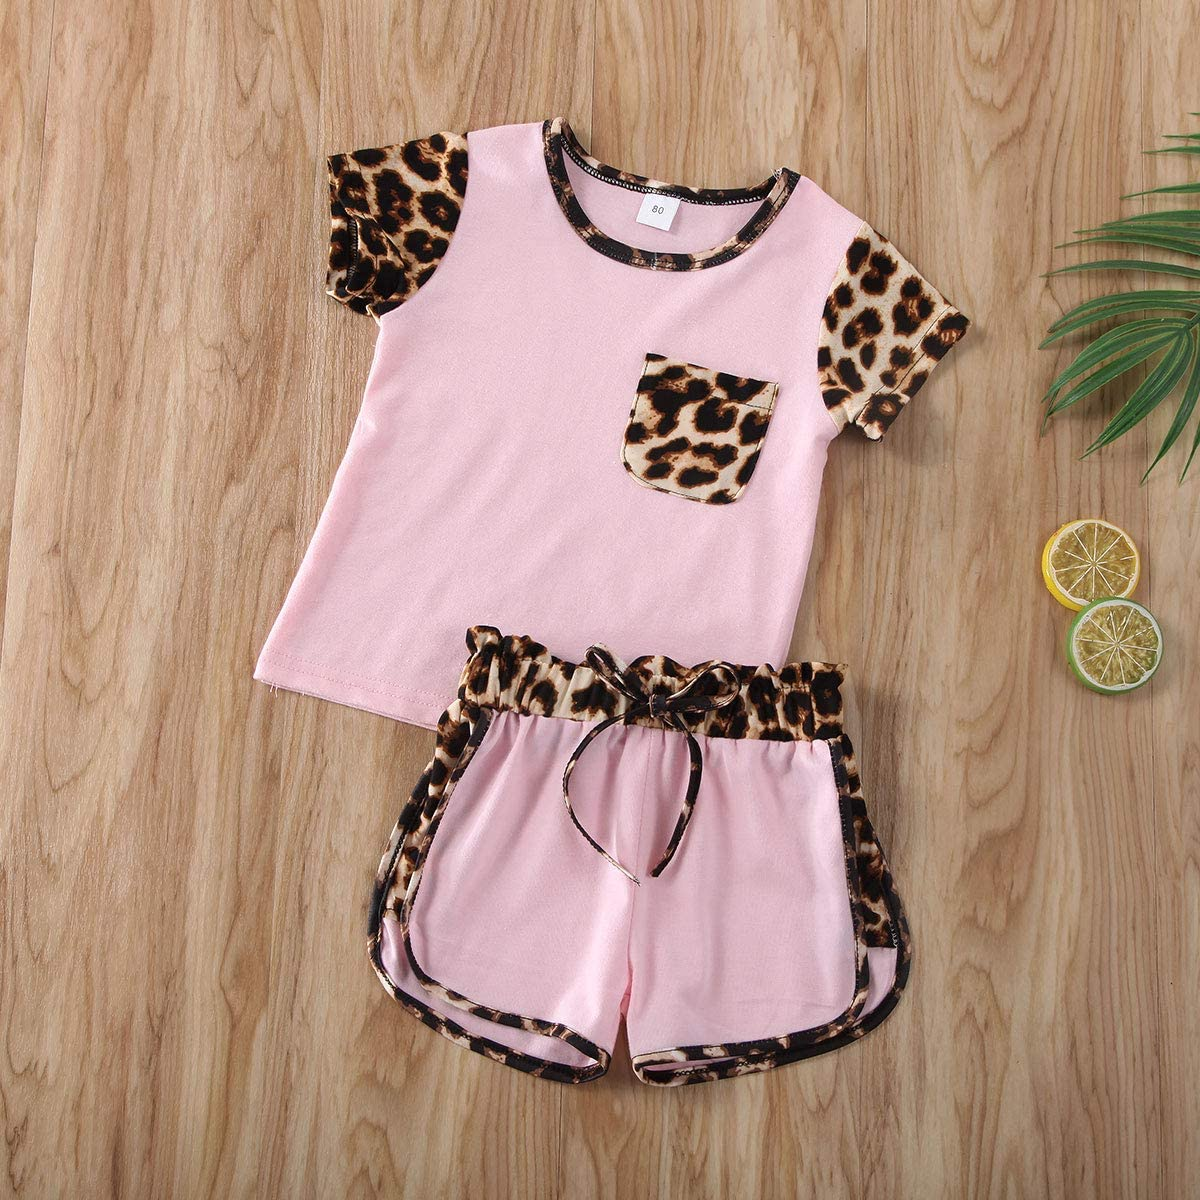 Carolilly Toddler Kids Baby Girl Summer Outfits Short Sleeve T-Shirt Top Leopard Shorts Pants Clothes Set